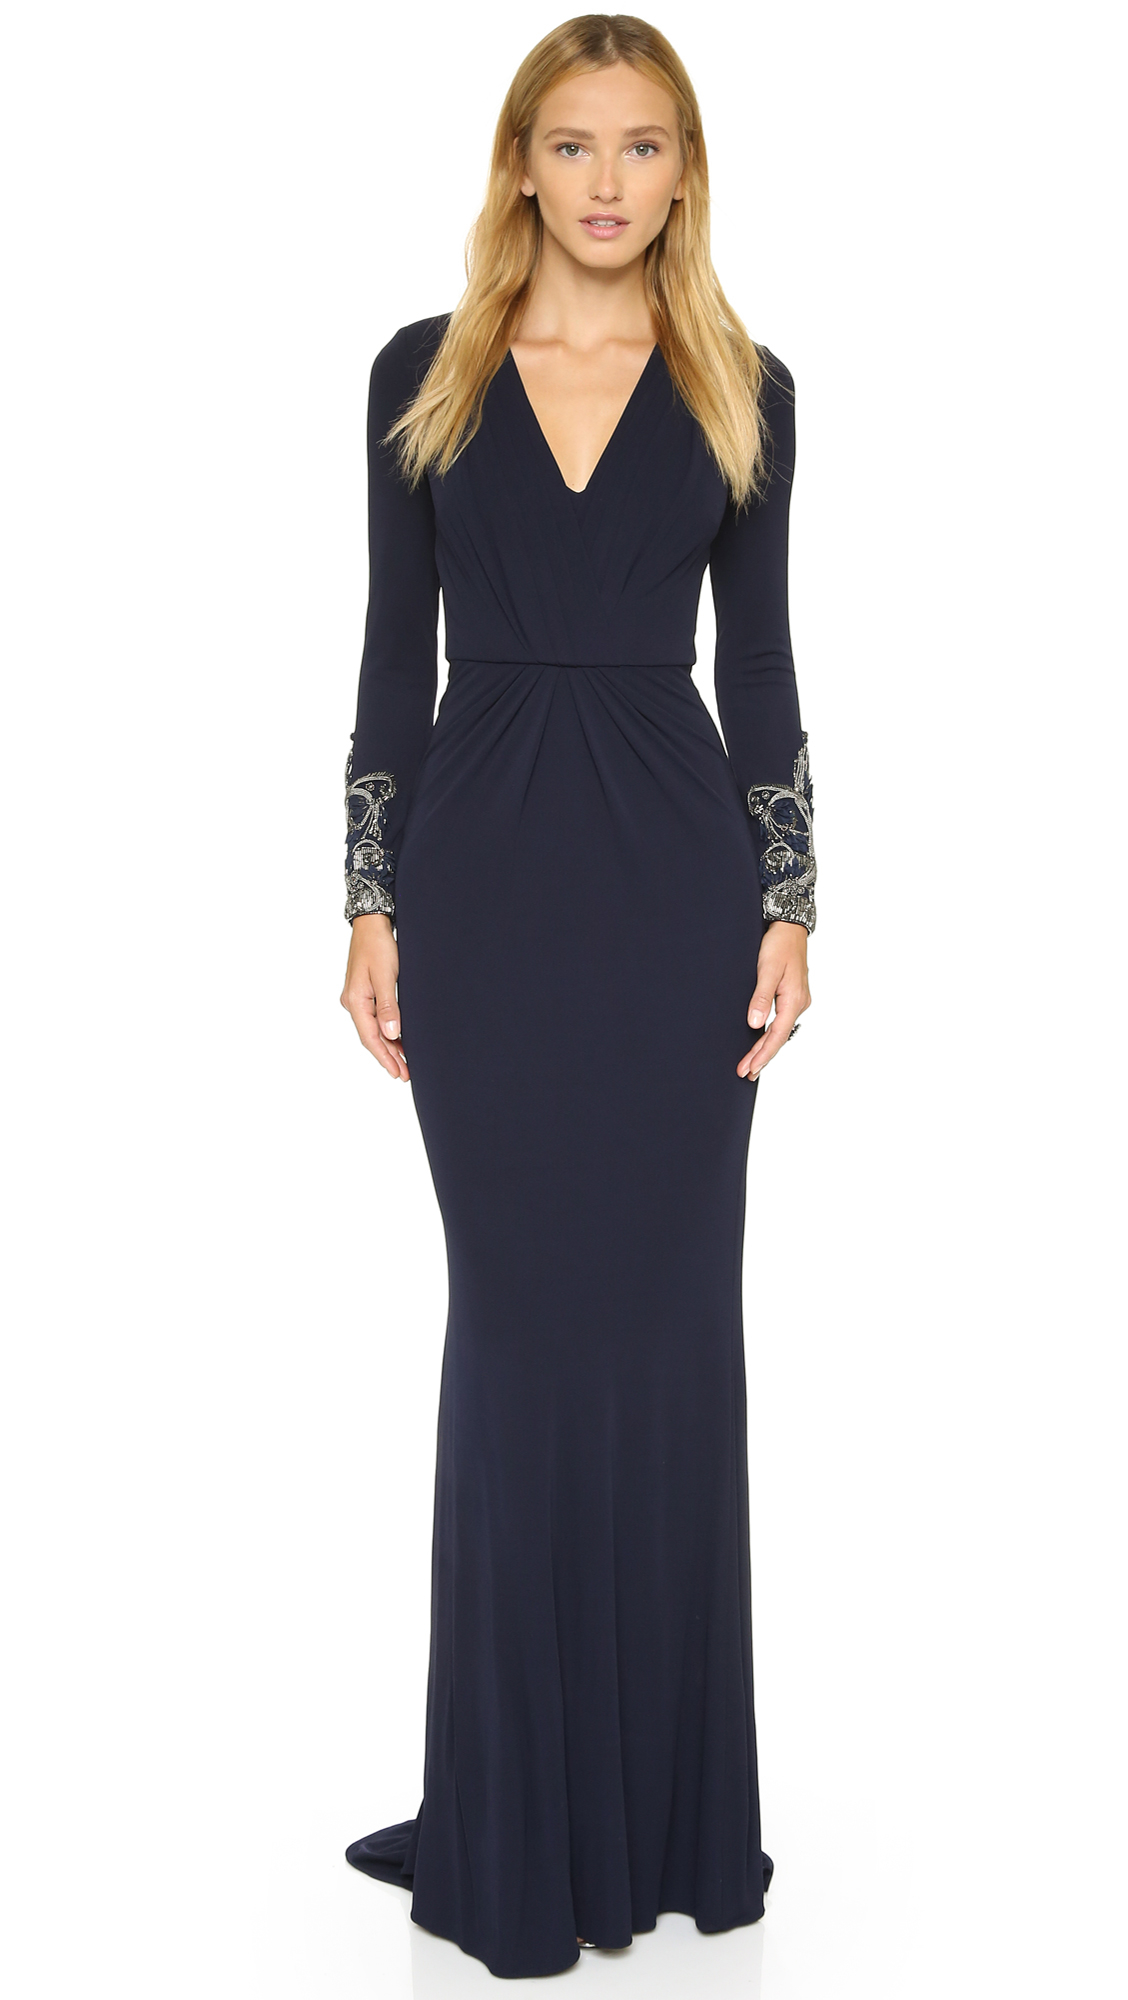 Lyst - Badgley Mischka Deep V Neck Gown in Blue